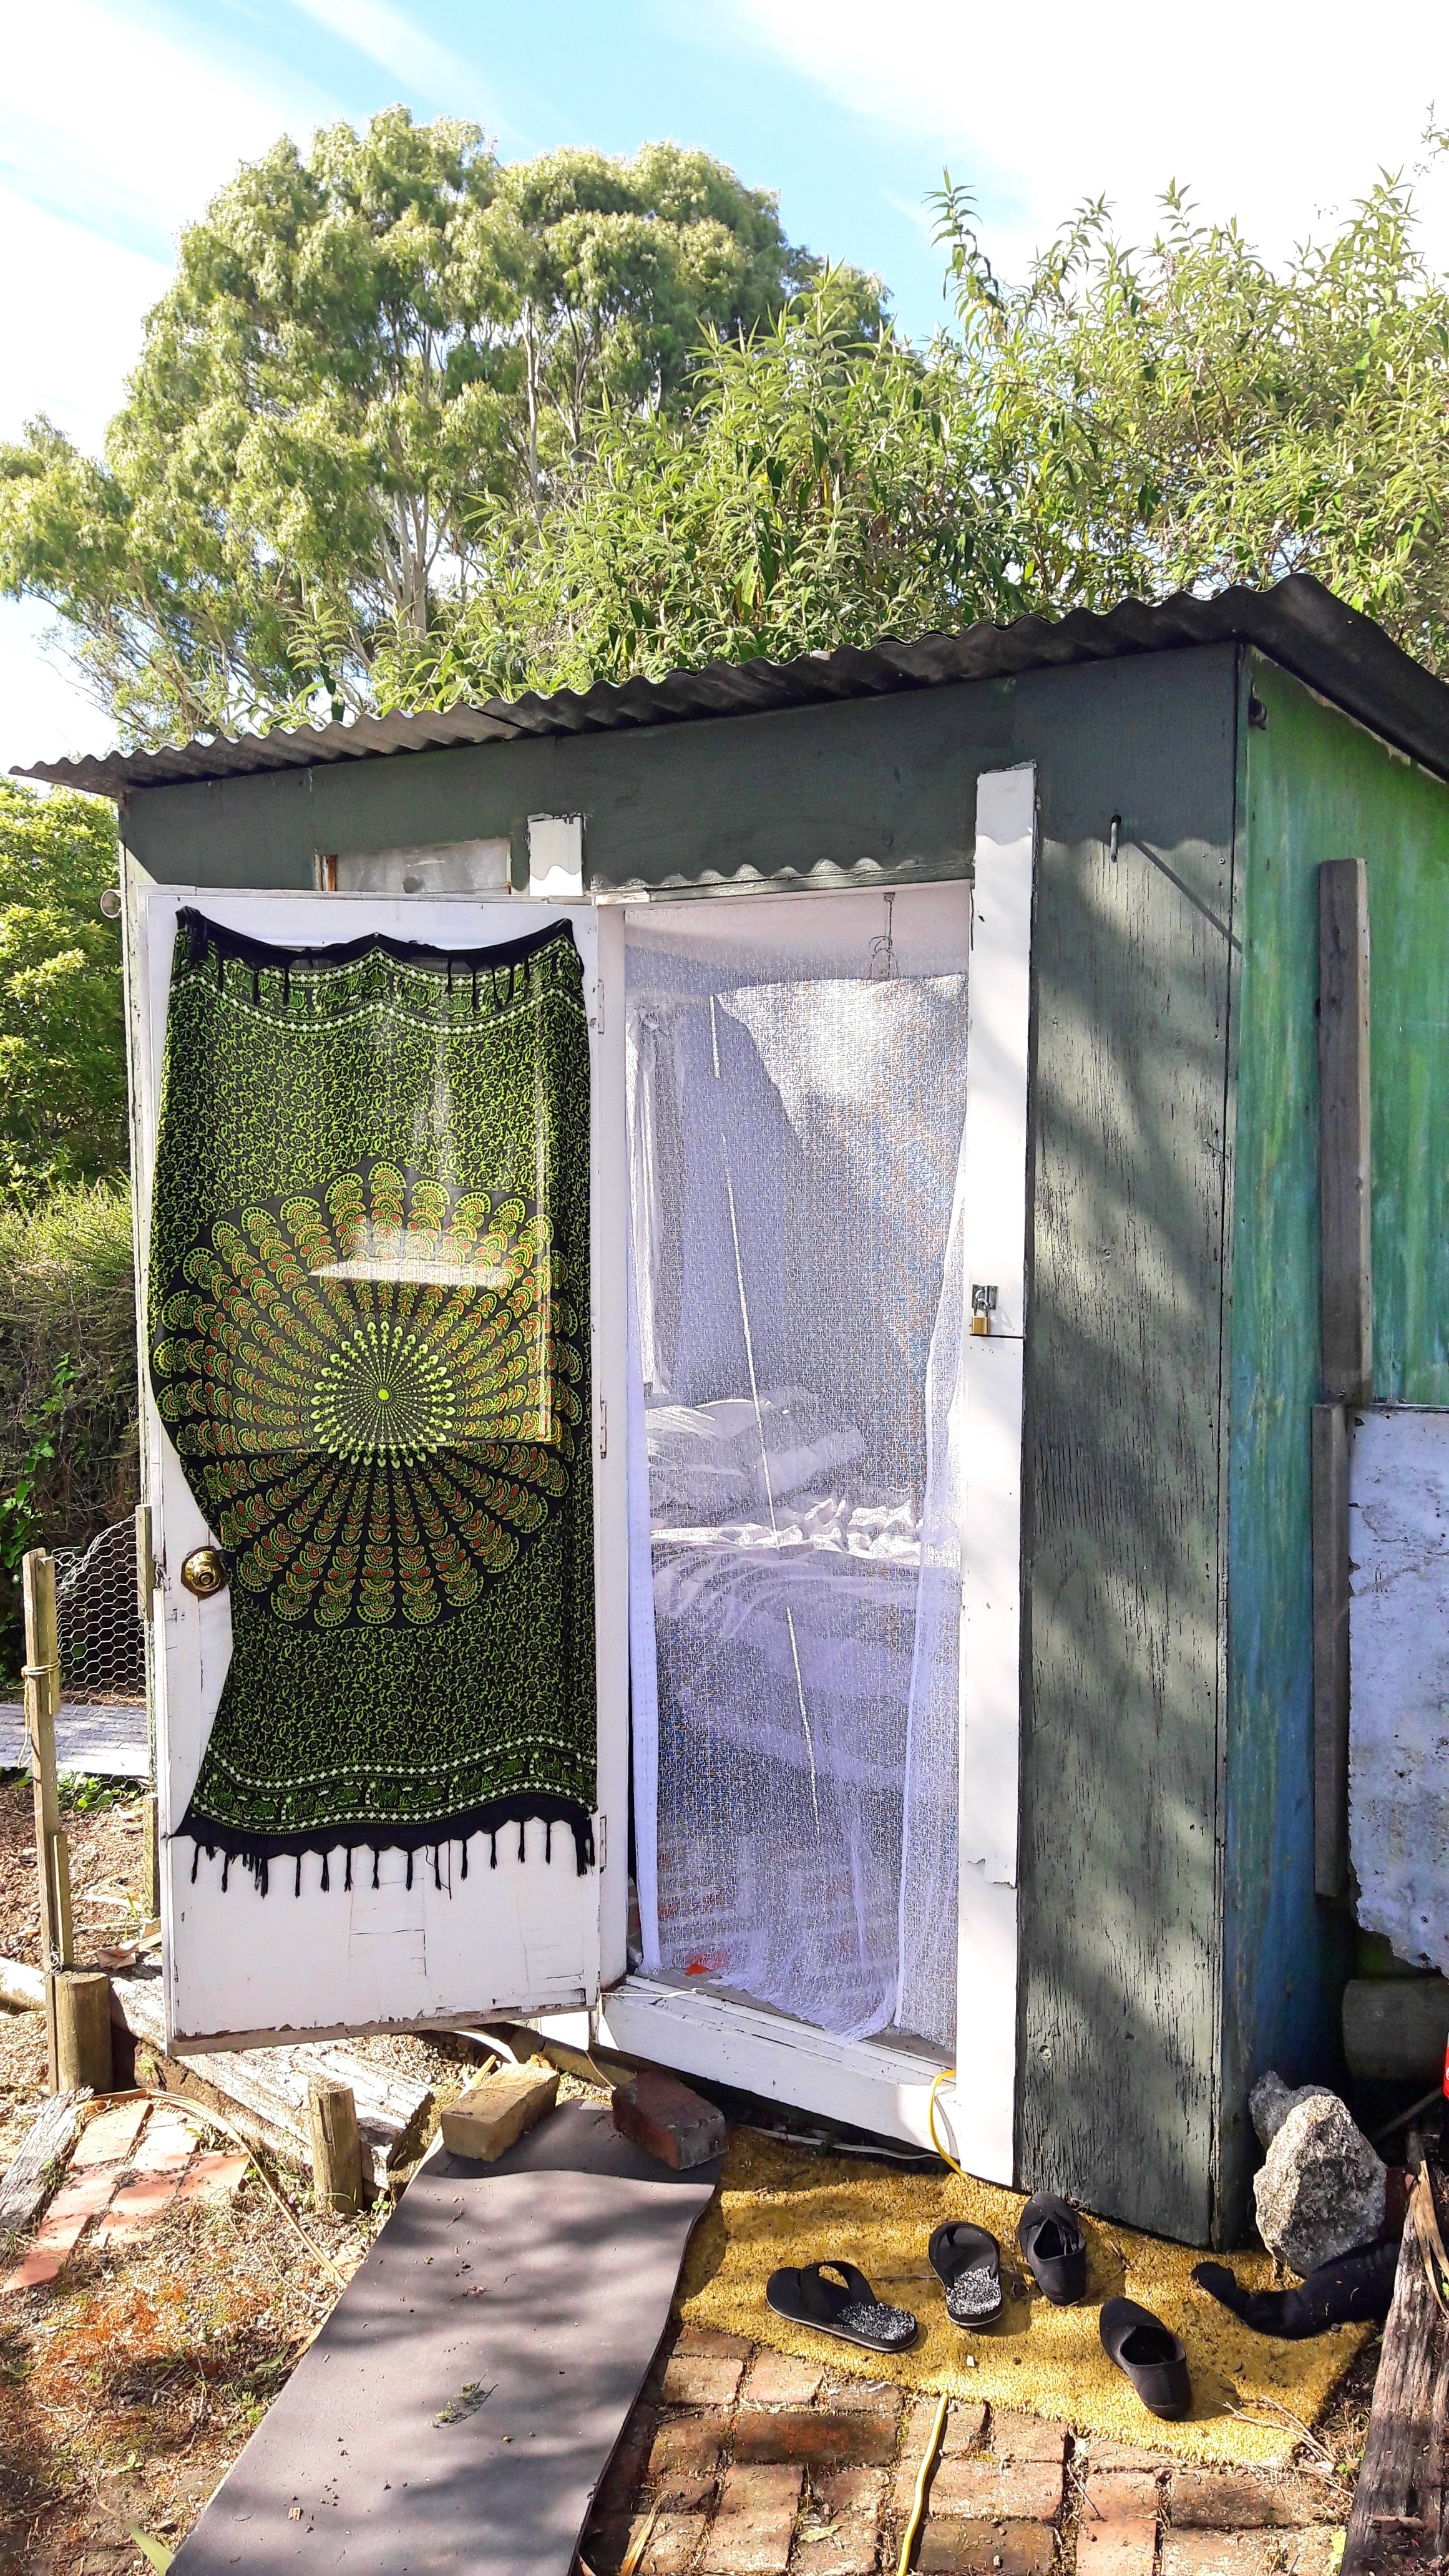 The 8ft X 8ft Converted Shed We lived in for $60NZD/ week